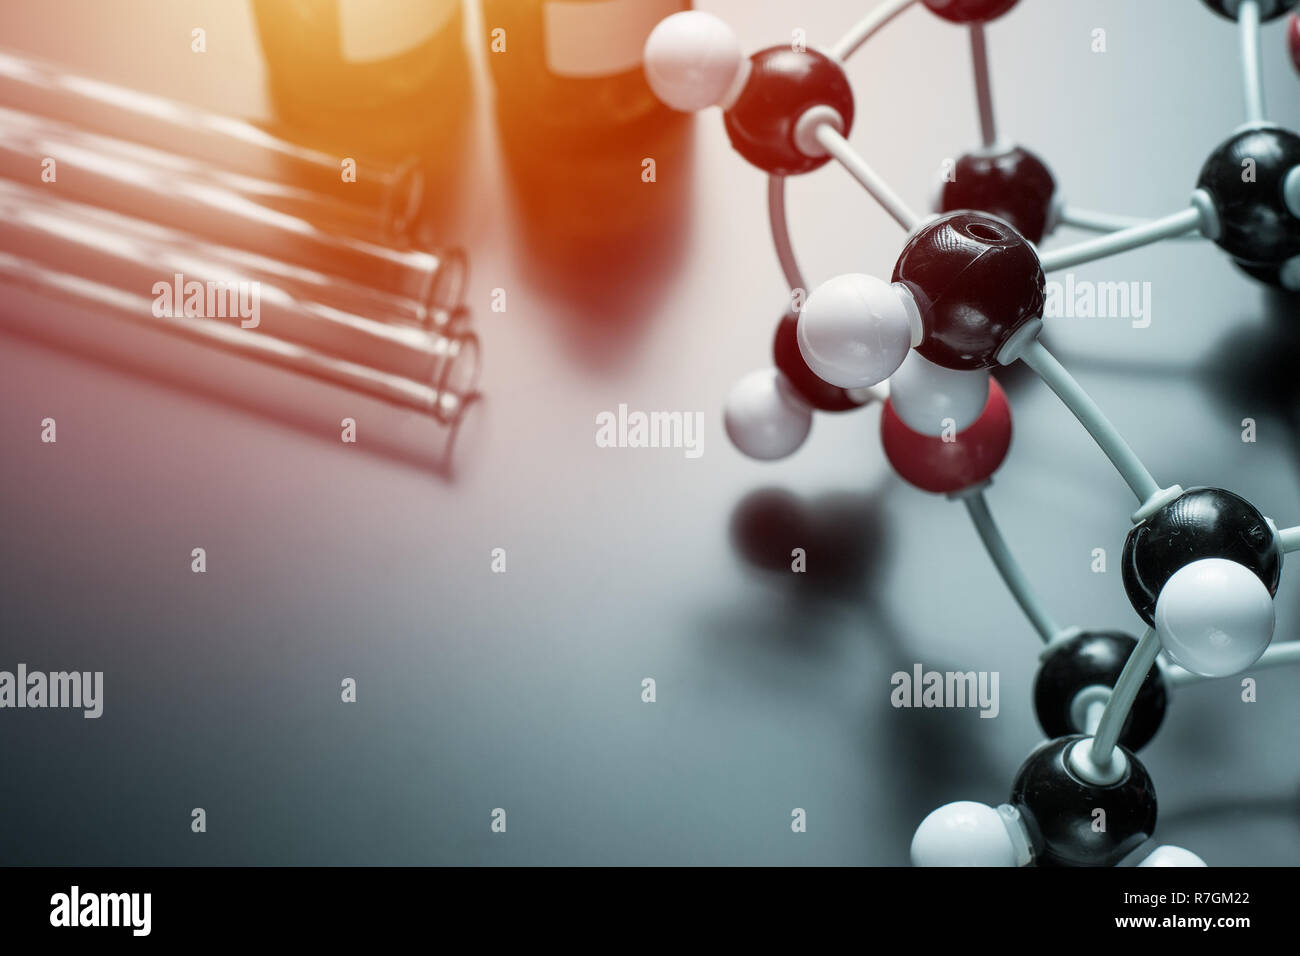 molecular formula and laboratory equipment on blue background. Science organic chemistry concept Stock Photo